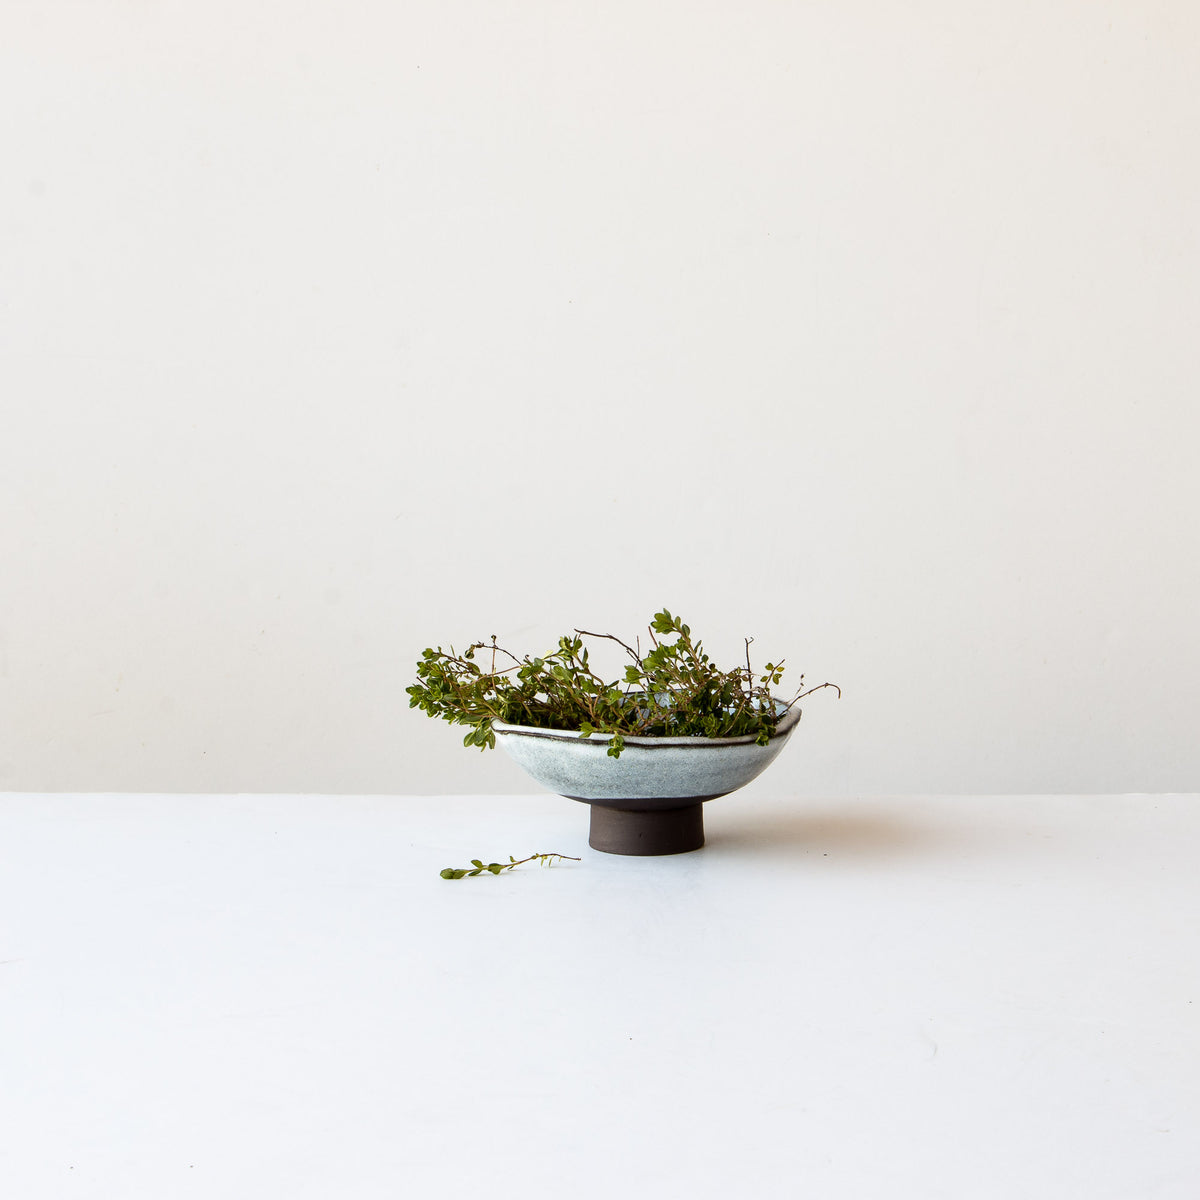 Handmade Stoneware Small Miso Bowl Shown with Thyme - Grey & White - Sold by Chic & Basta